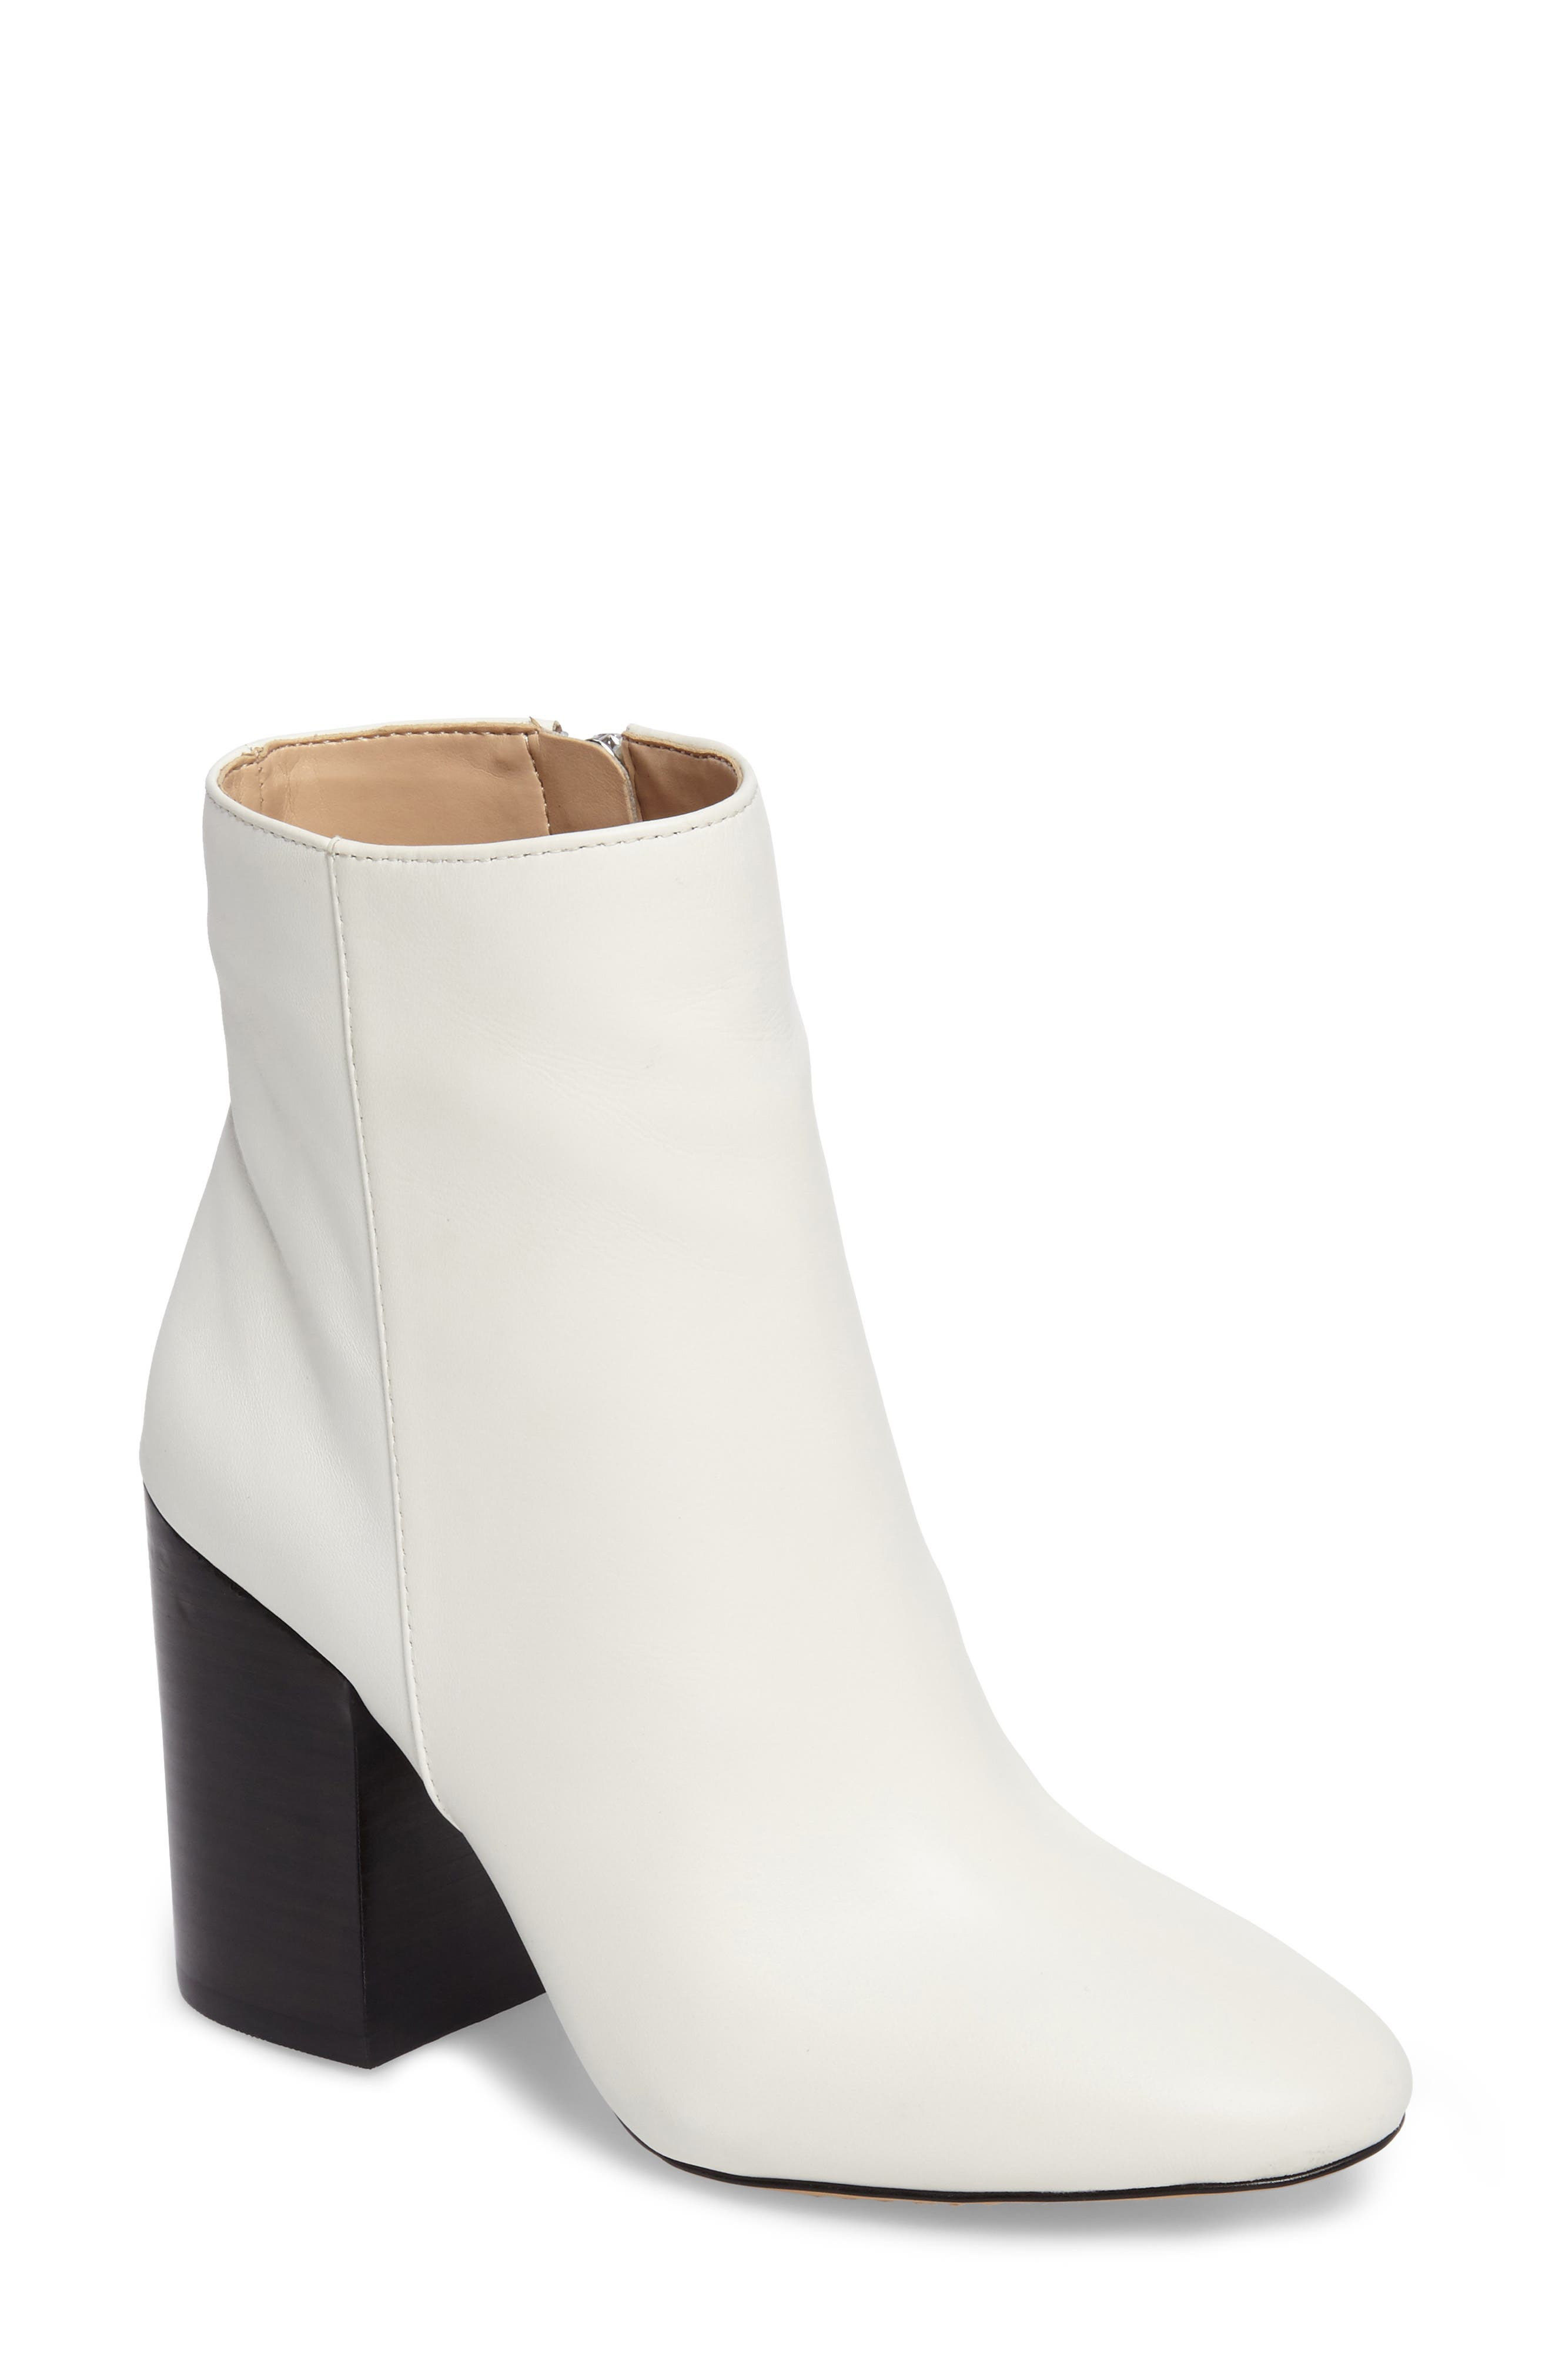 Main Image - Vince Camuto Destilly 2 Bootie (Women)